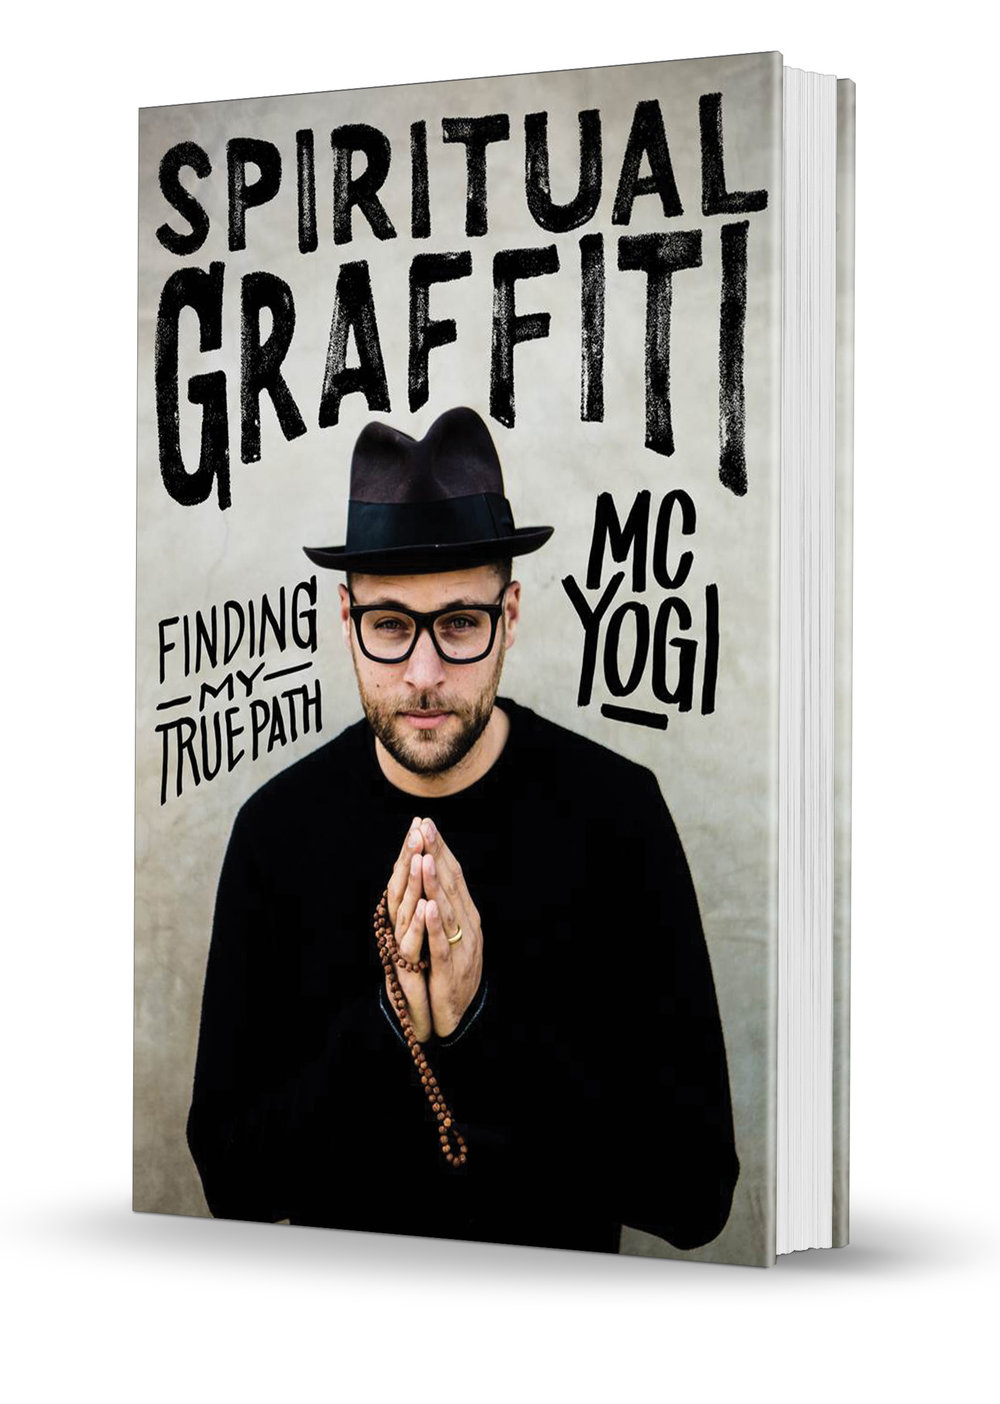 Hip-hop artist and famed yoga teacher MC Yogi offers his wisdom and inspiration for spiritual seekers in this enlightening memoir, which recounts his journey from a troubled youth to becoming a successful musical pioneer and one of the most beloved yoga teachers in North America.  On sale September 19th. Order your copy today.